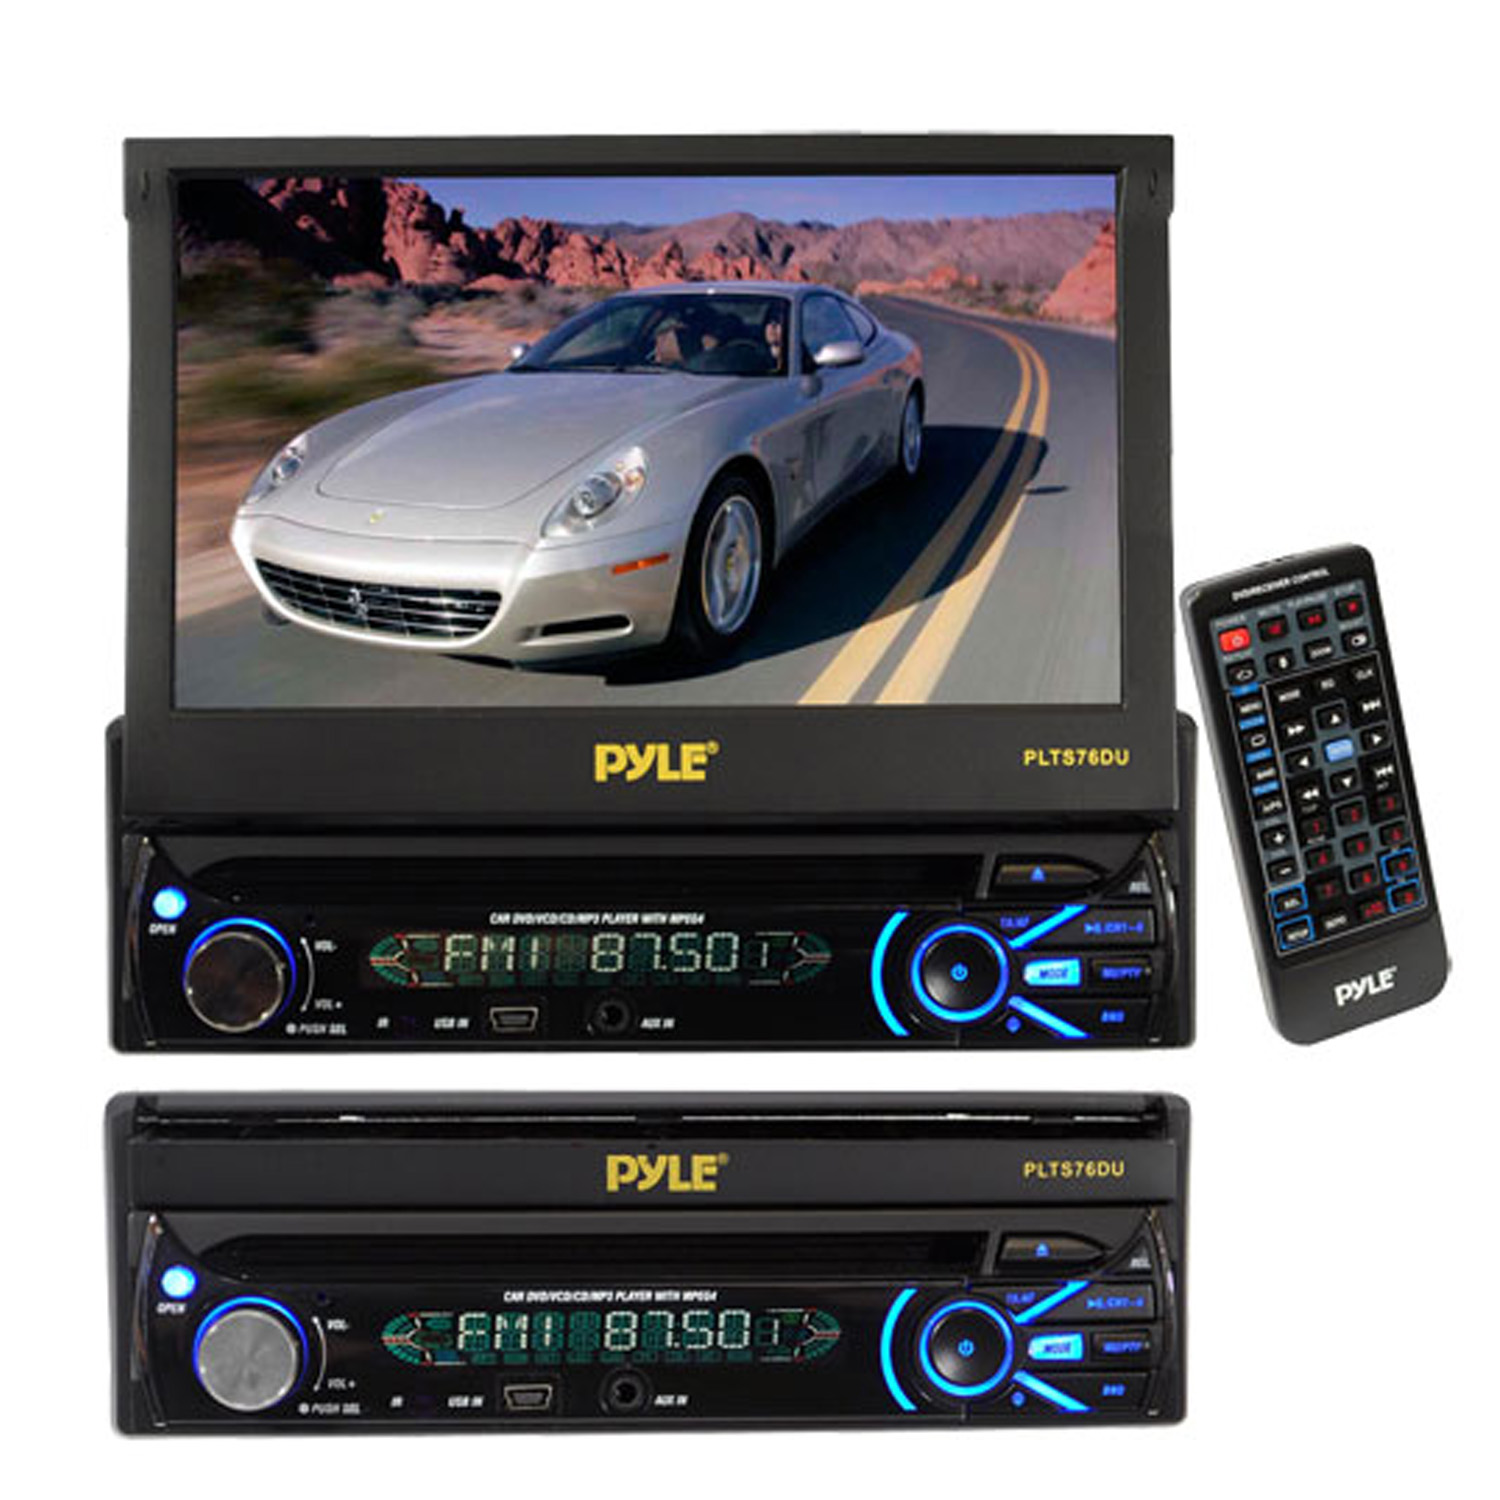 small resolution of pyle plts76du 7 touch screen motorized detachable tft lcd pyle plbt72g wiring diagram pyle plts76du wiring diagram